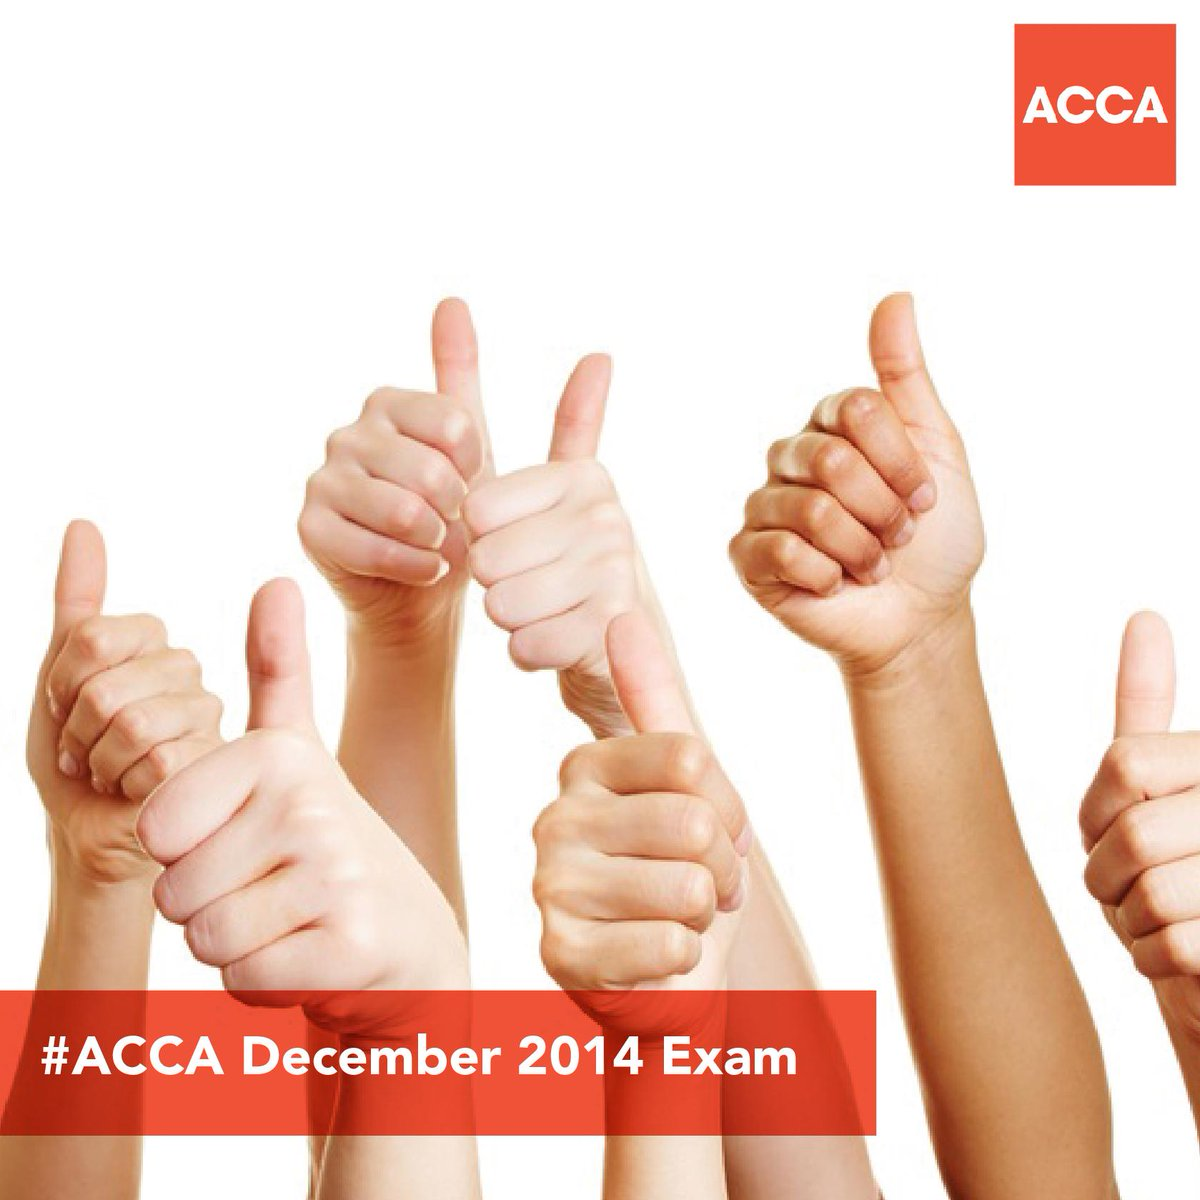 Good luck to all our students heading for their #ACCA exams starting this afternoon. Carpe diem! http://t.co/A6XC66txjh